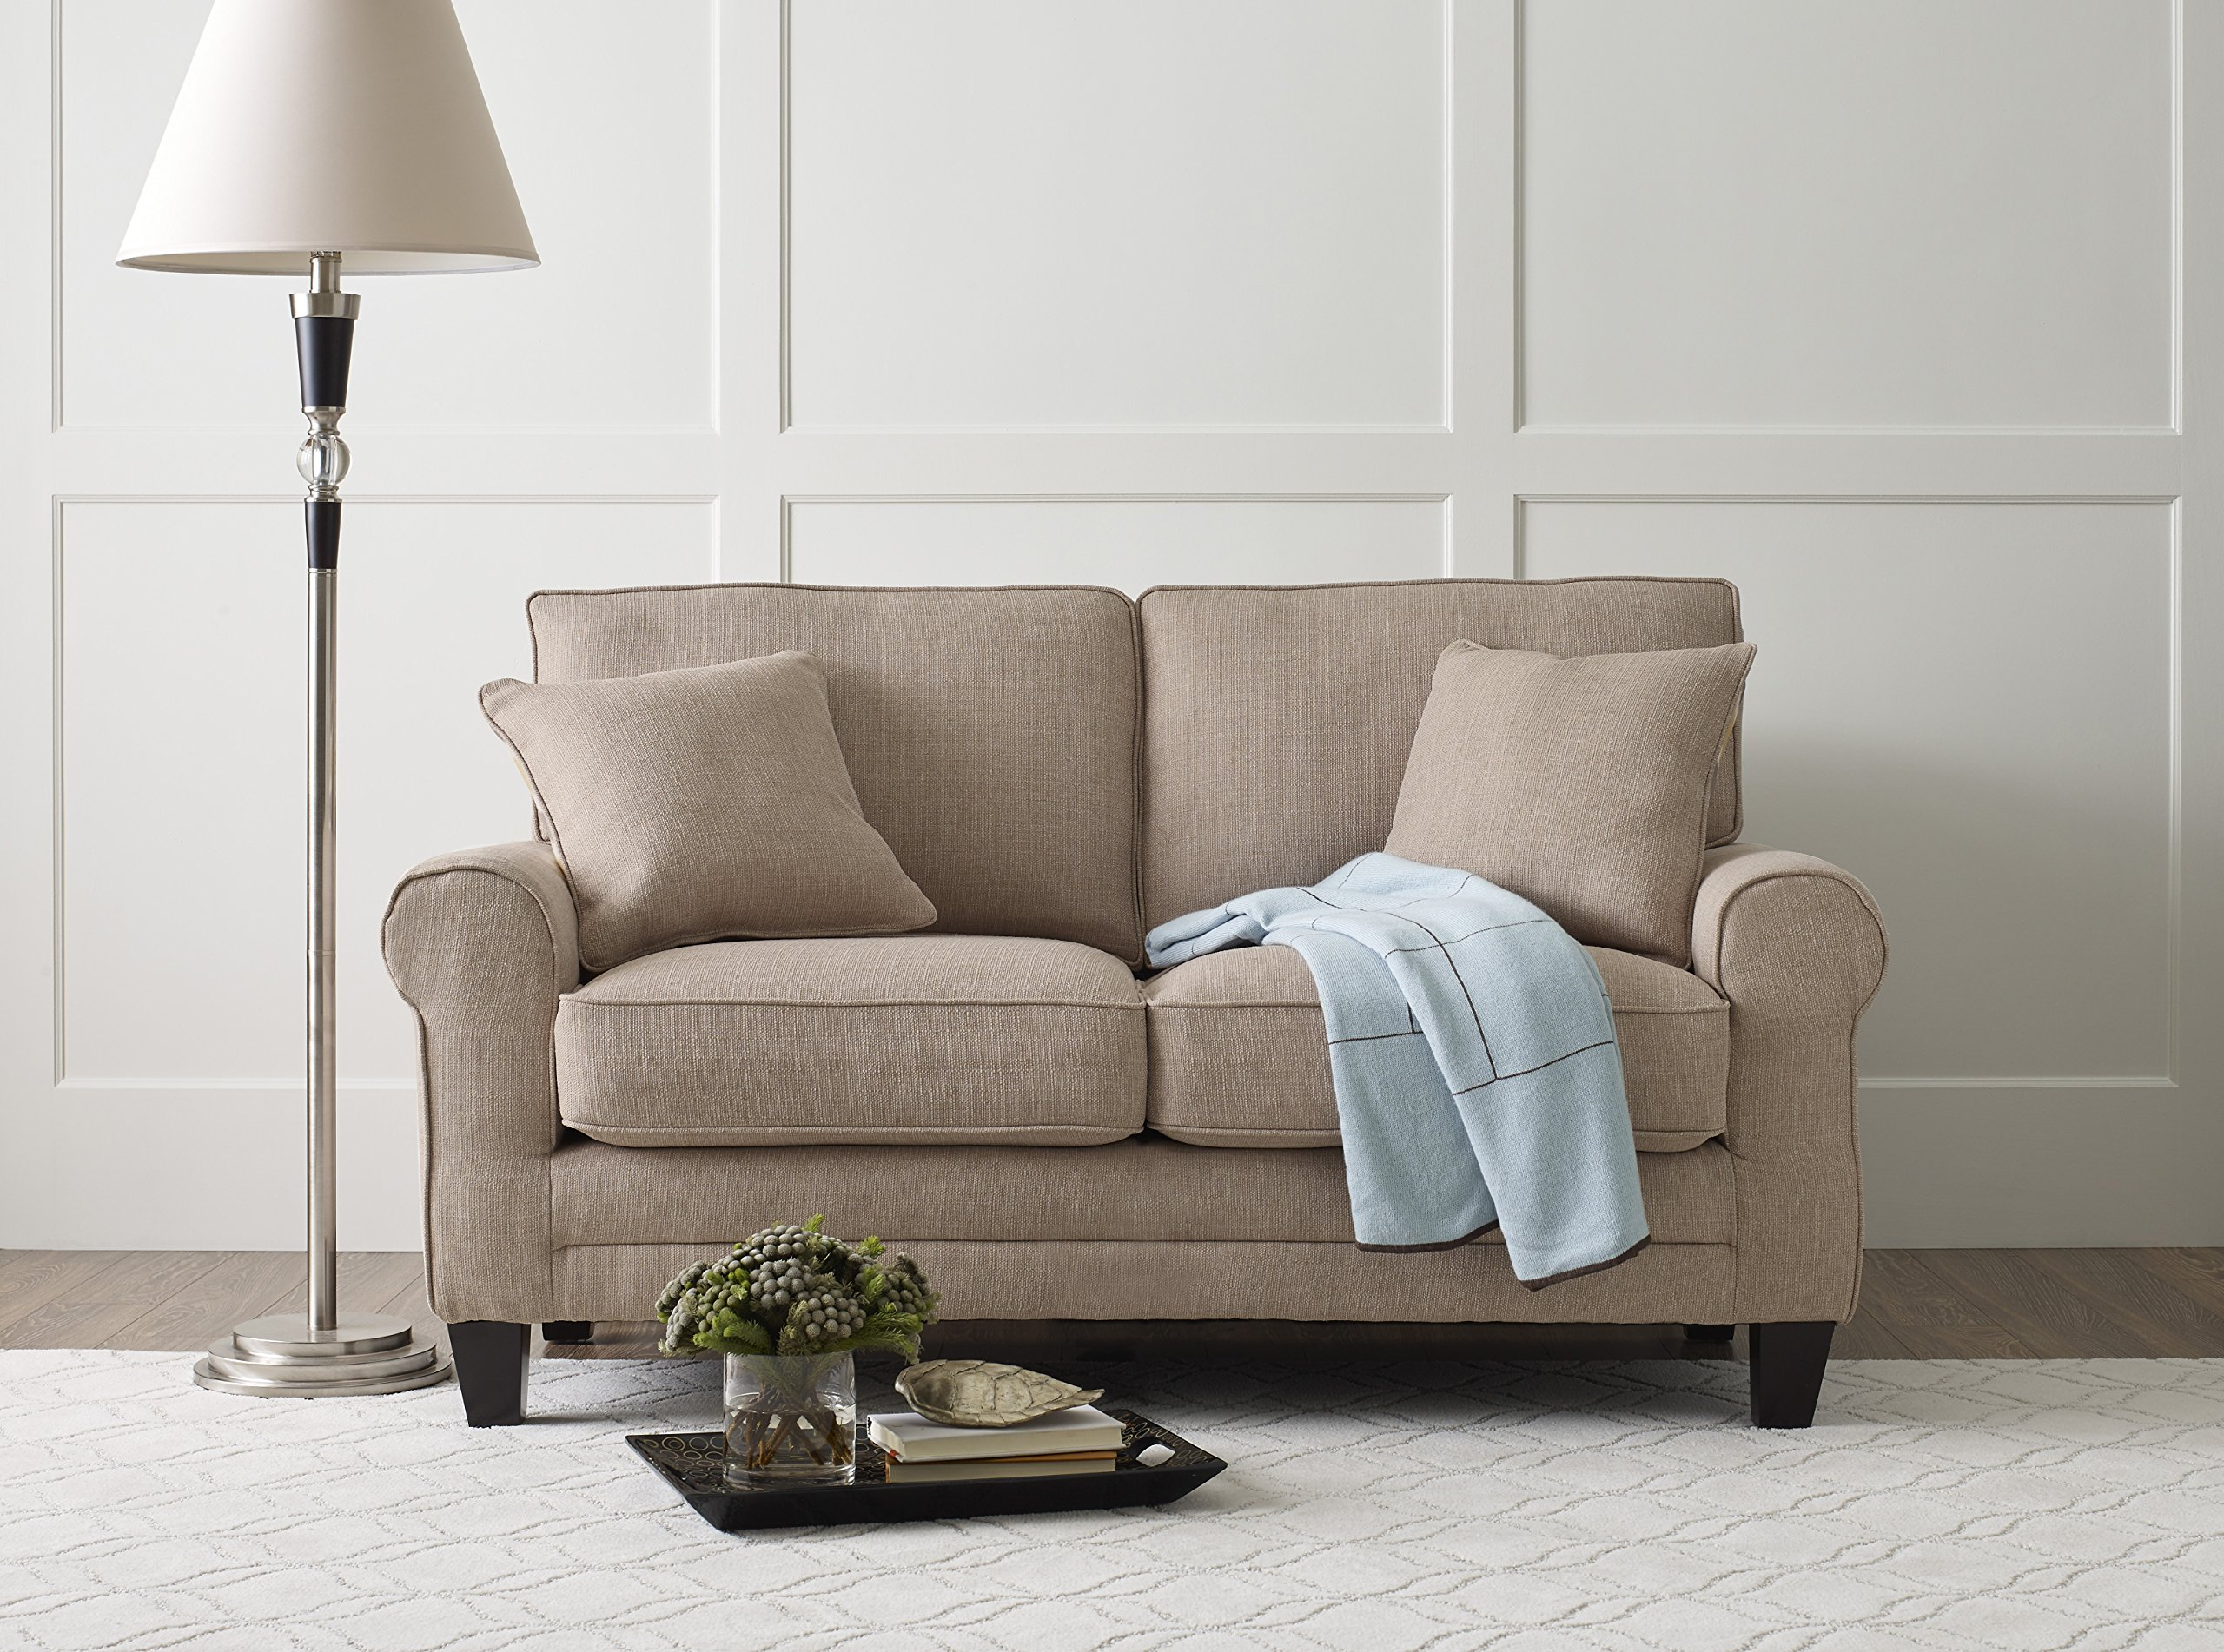 Serta Deep Seating Copenhagen 61'' Loveseat in Windsor Tan